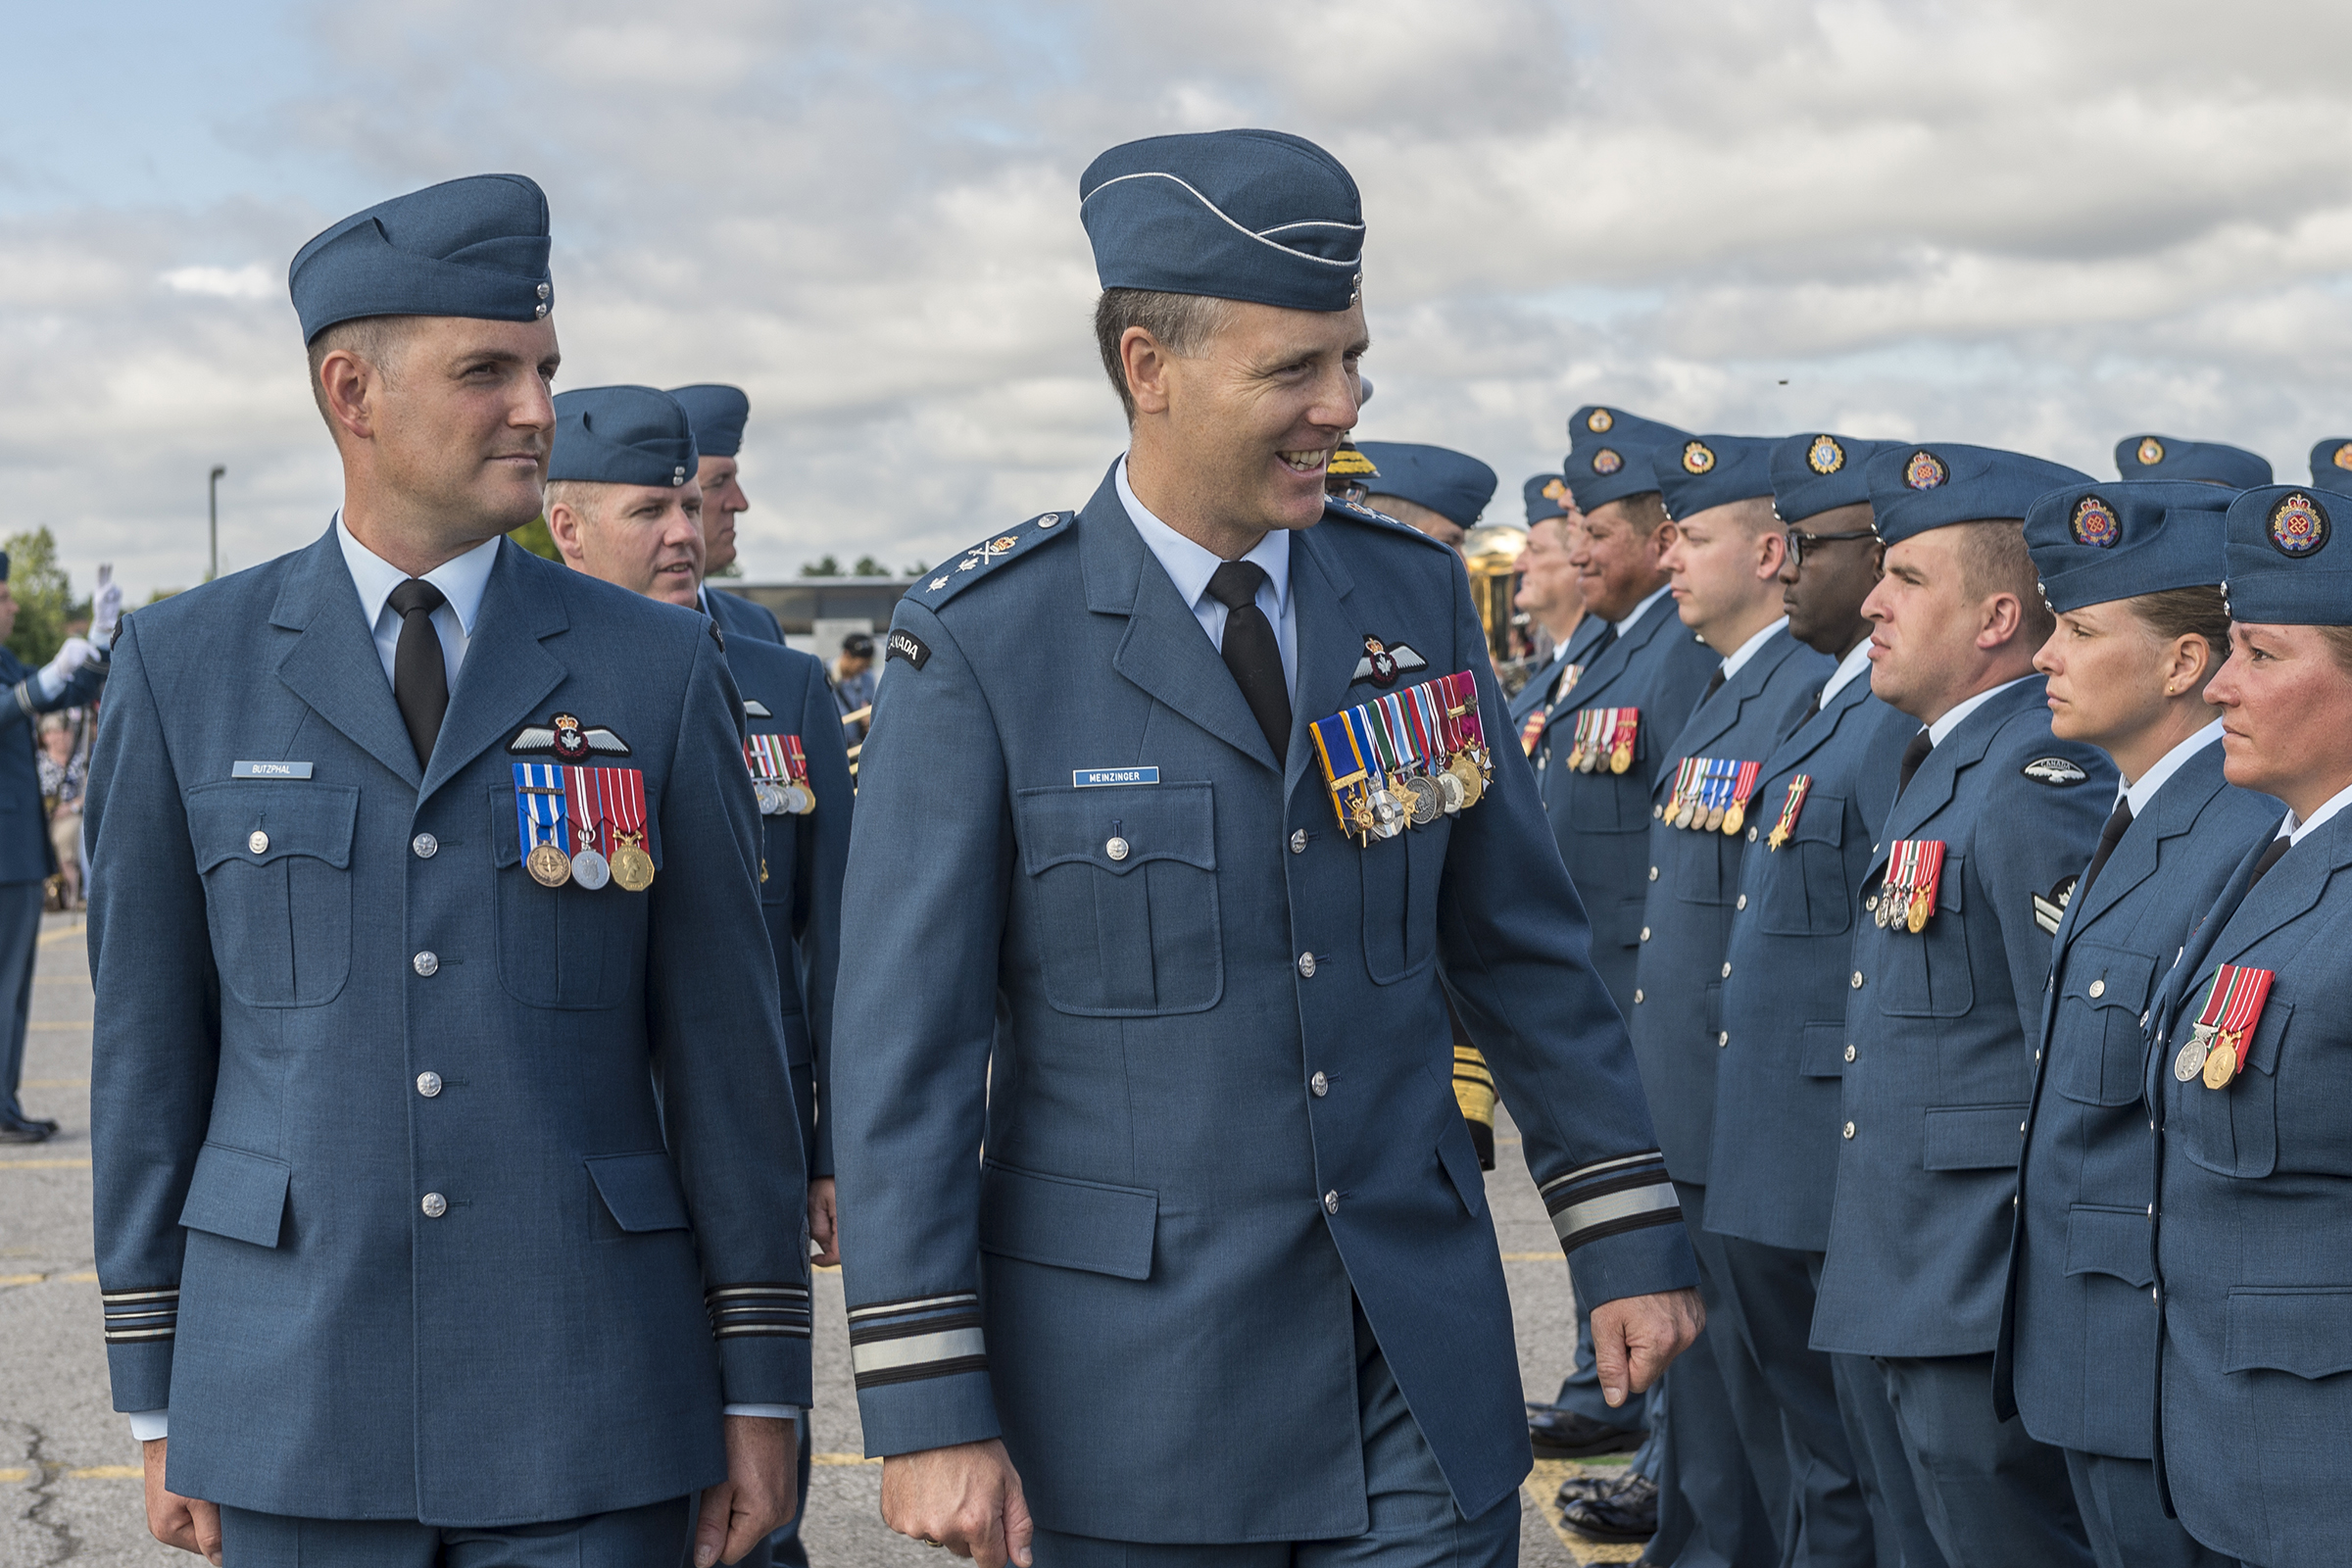 Accompanied by the parade commander, Major Peter Butzphal, Major-General Al Meinzinger, deputy commander of the Royal Canadian Air Force, inspects the airmen and airwomen on parade during the national Battle of Britain ceremony held September 18, 2016. PHOTO: Corporal Alana Morin, FA03-2016-0032-015